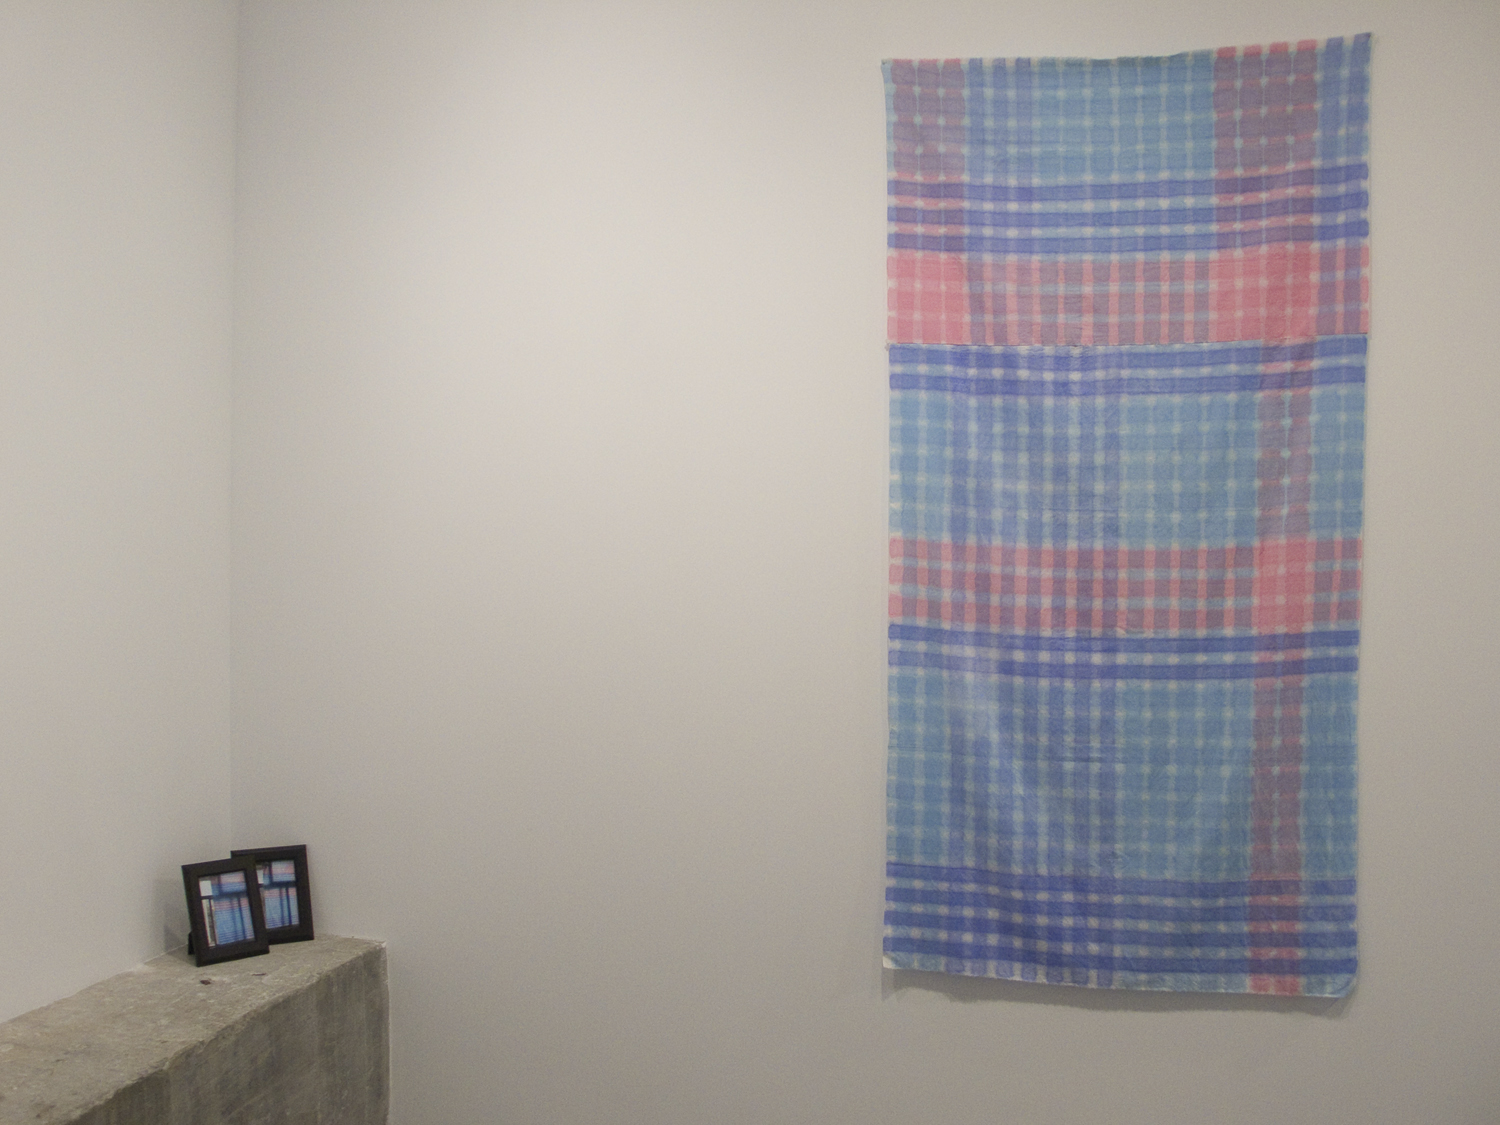 Lee Kit   Hand Painted Cloth (used as window curtain) , 2011 acrylic on fabric, 2 photo documents 81 x 40 in 205.7 x 101.6 cm